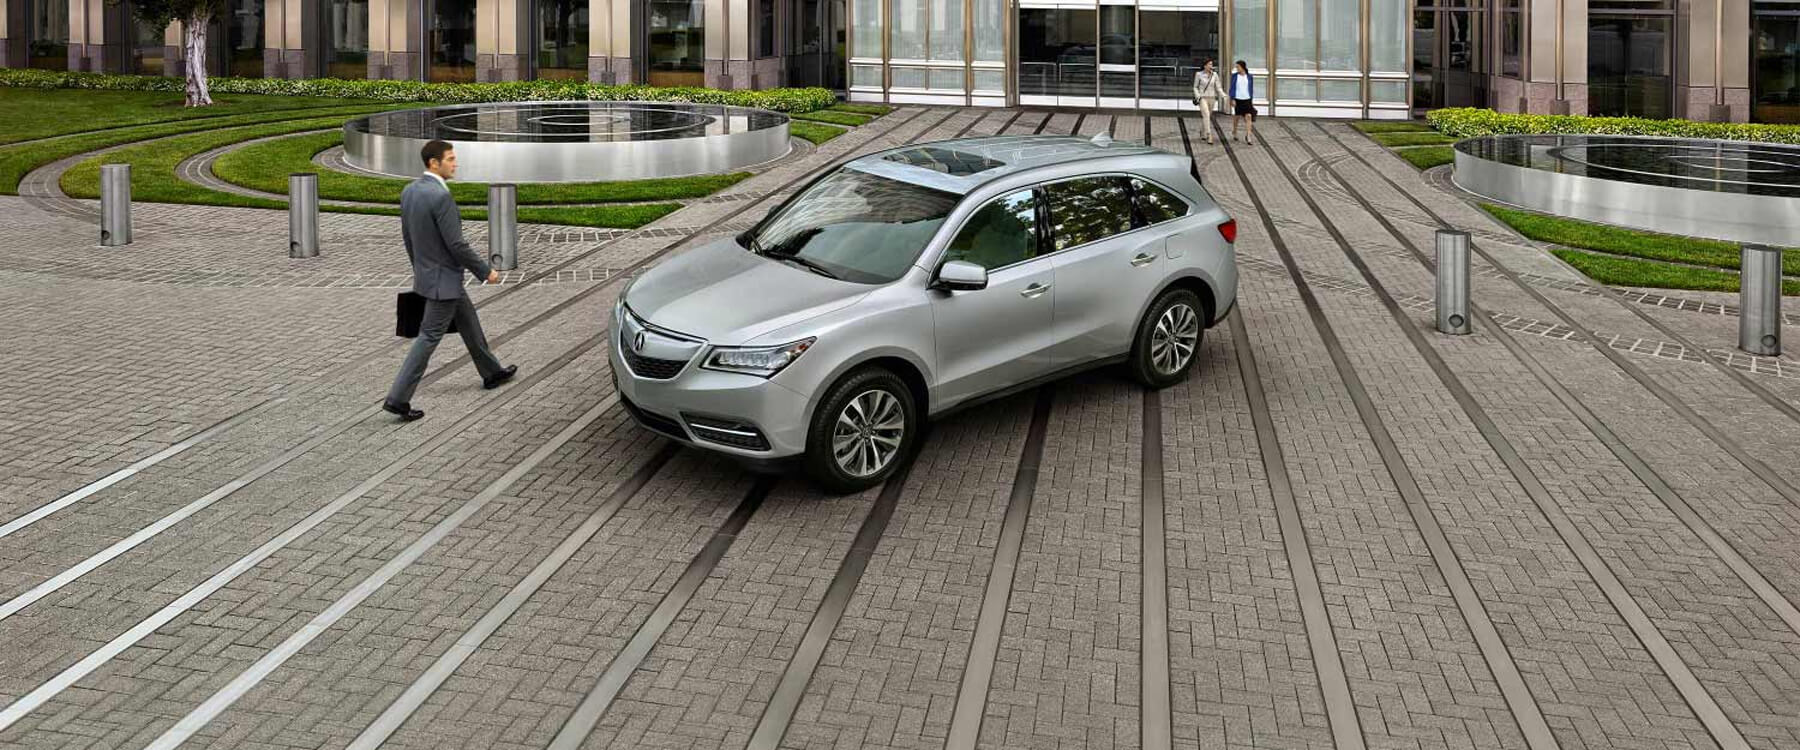 The Acura MDX A SevenSeater SUV For Chicagoland Families - Acura mdx competitors